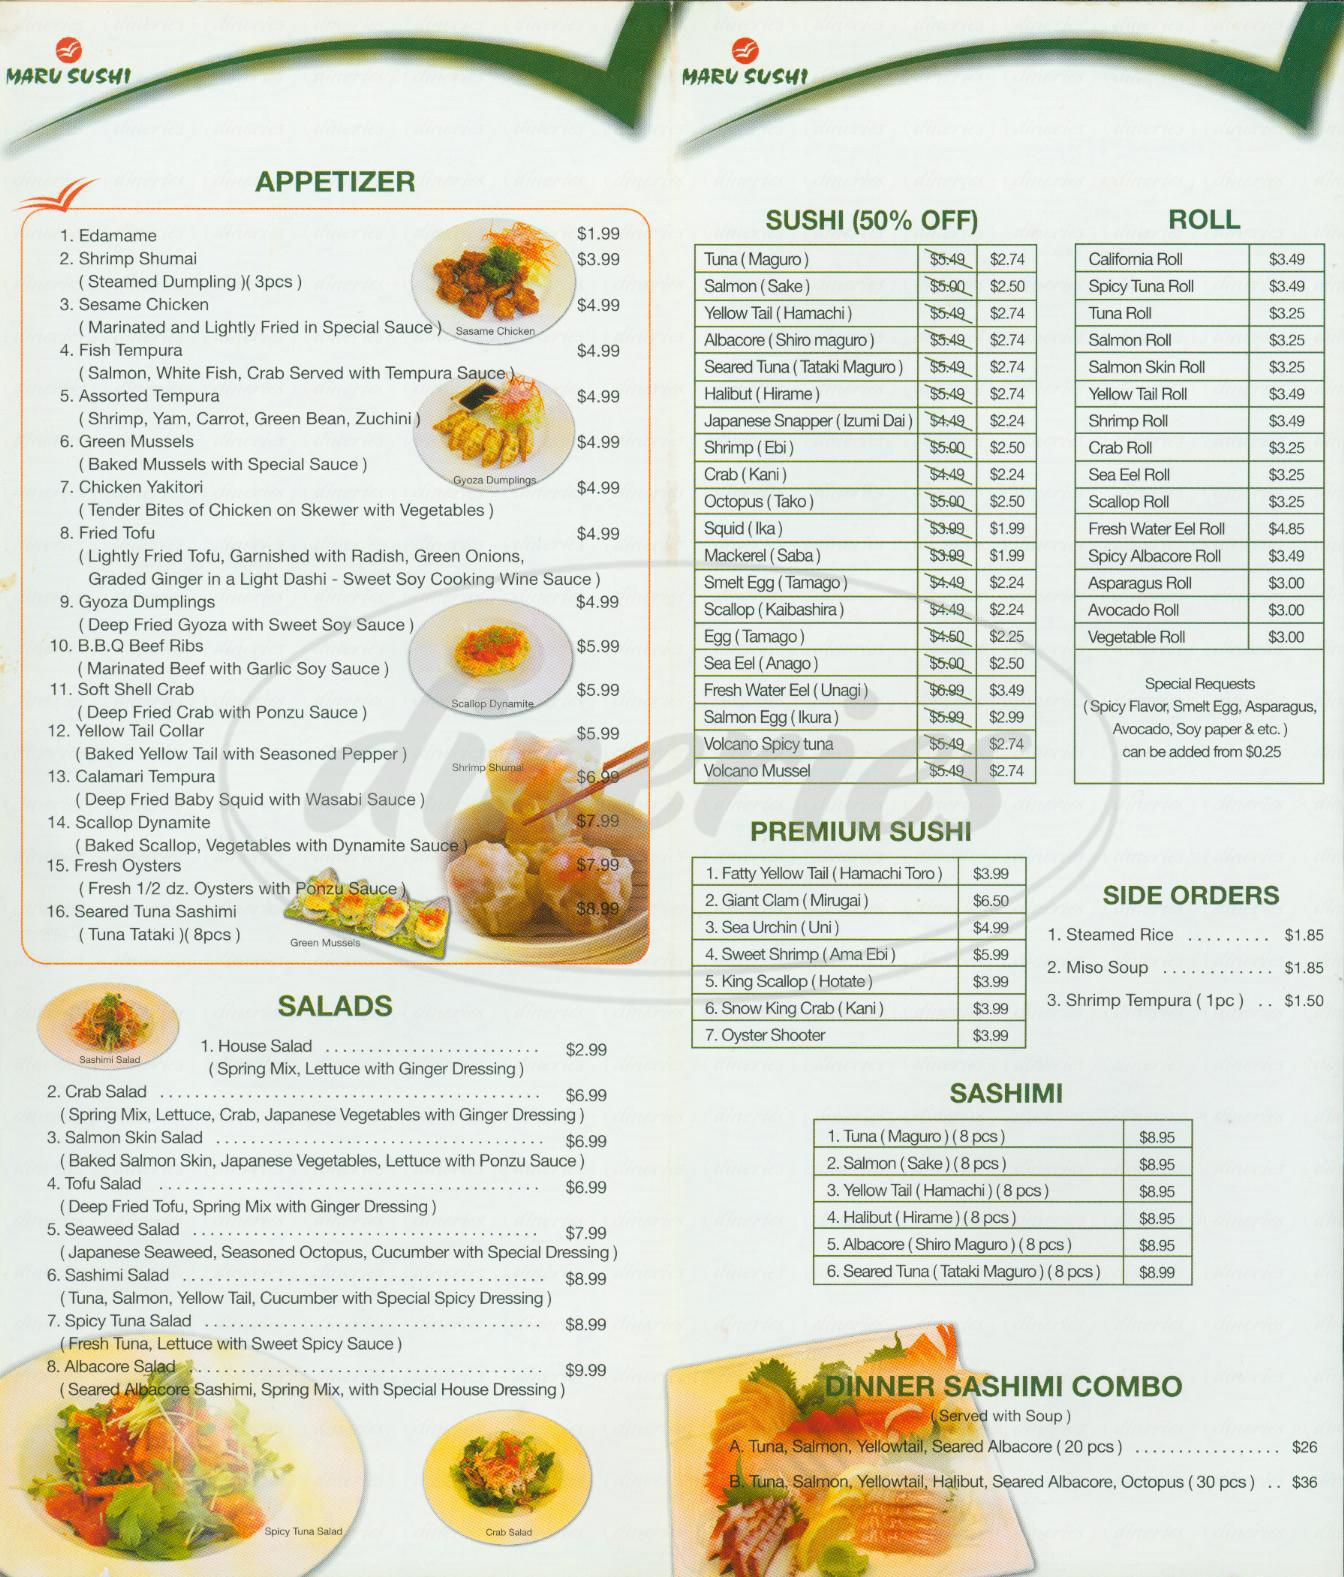 menu for Maru Sushi